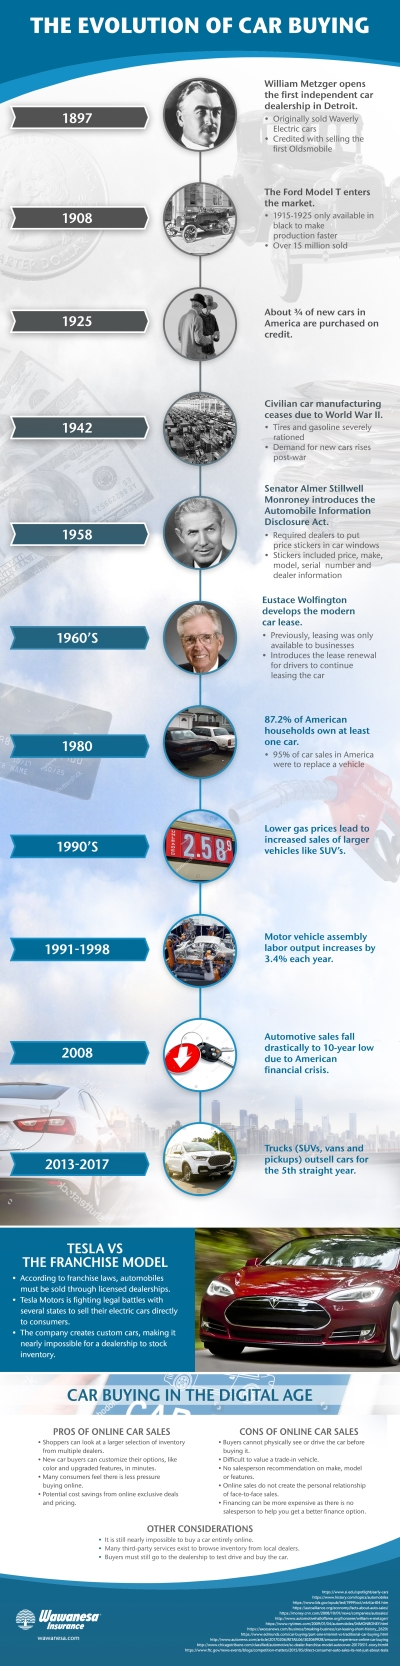 See how car buying has changed over the years.